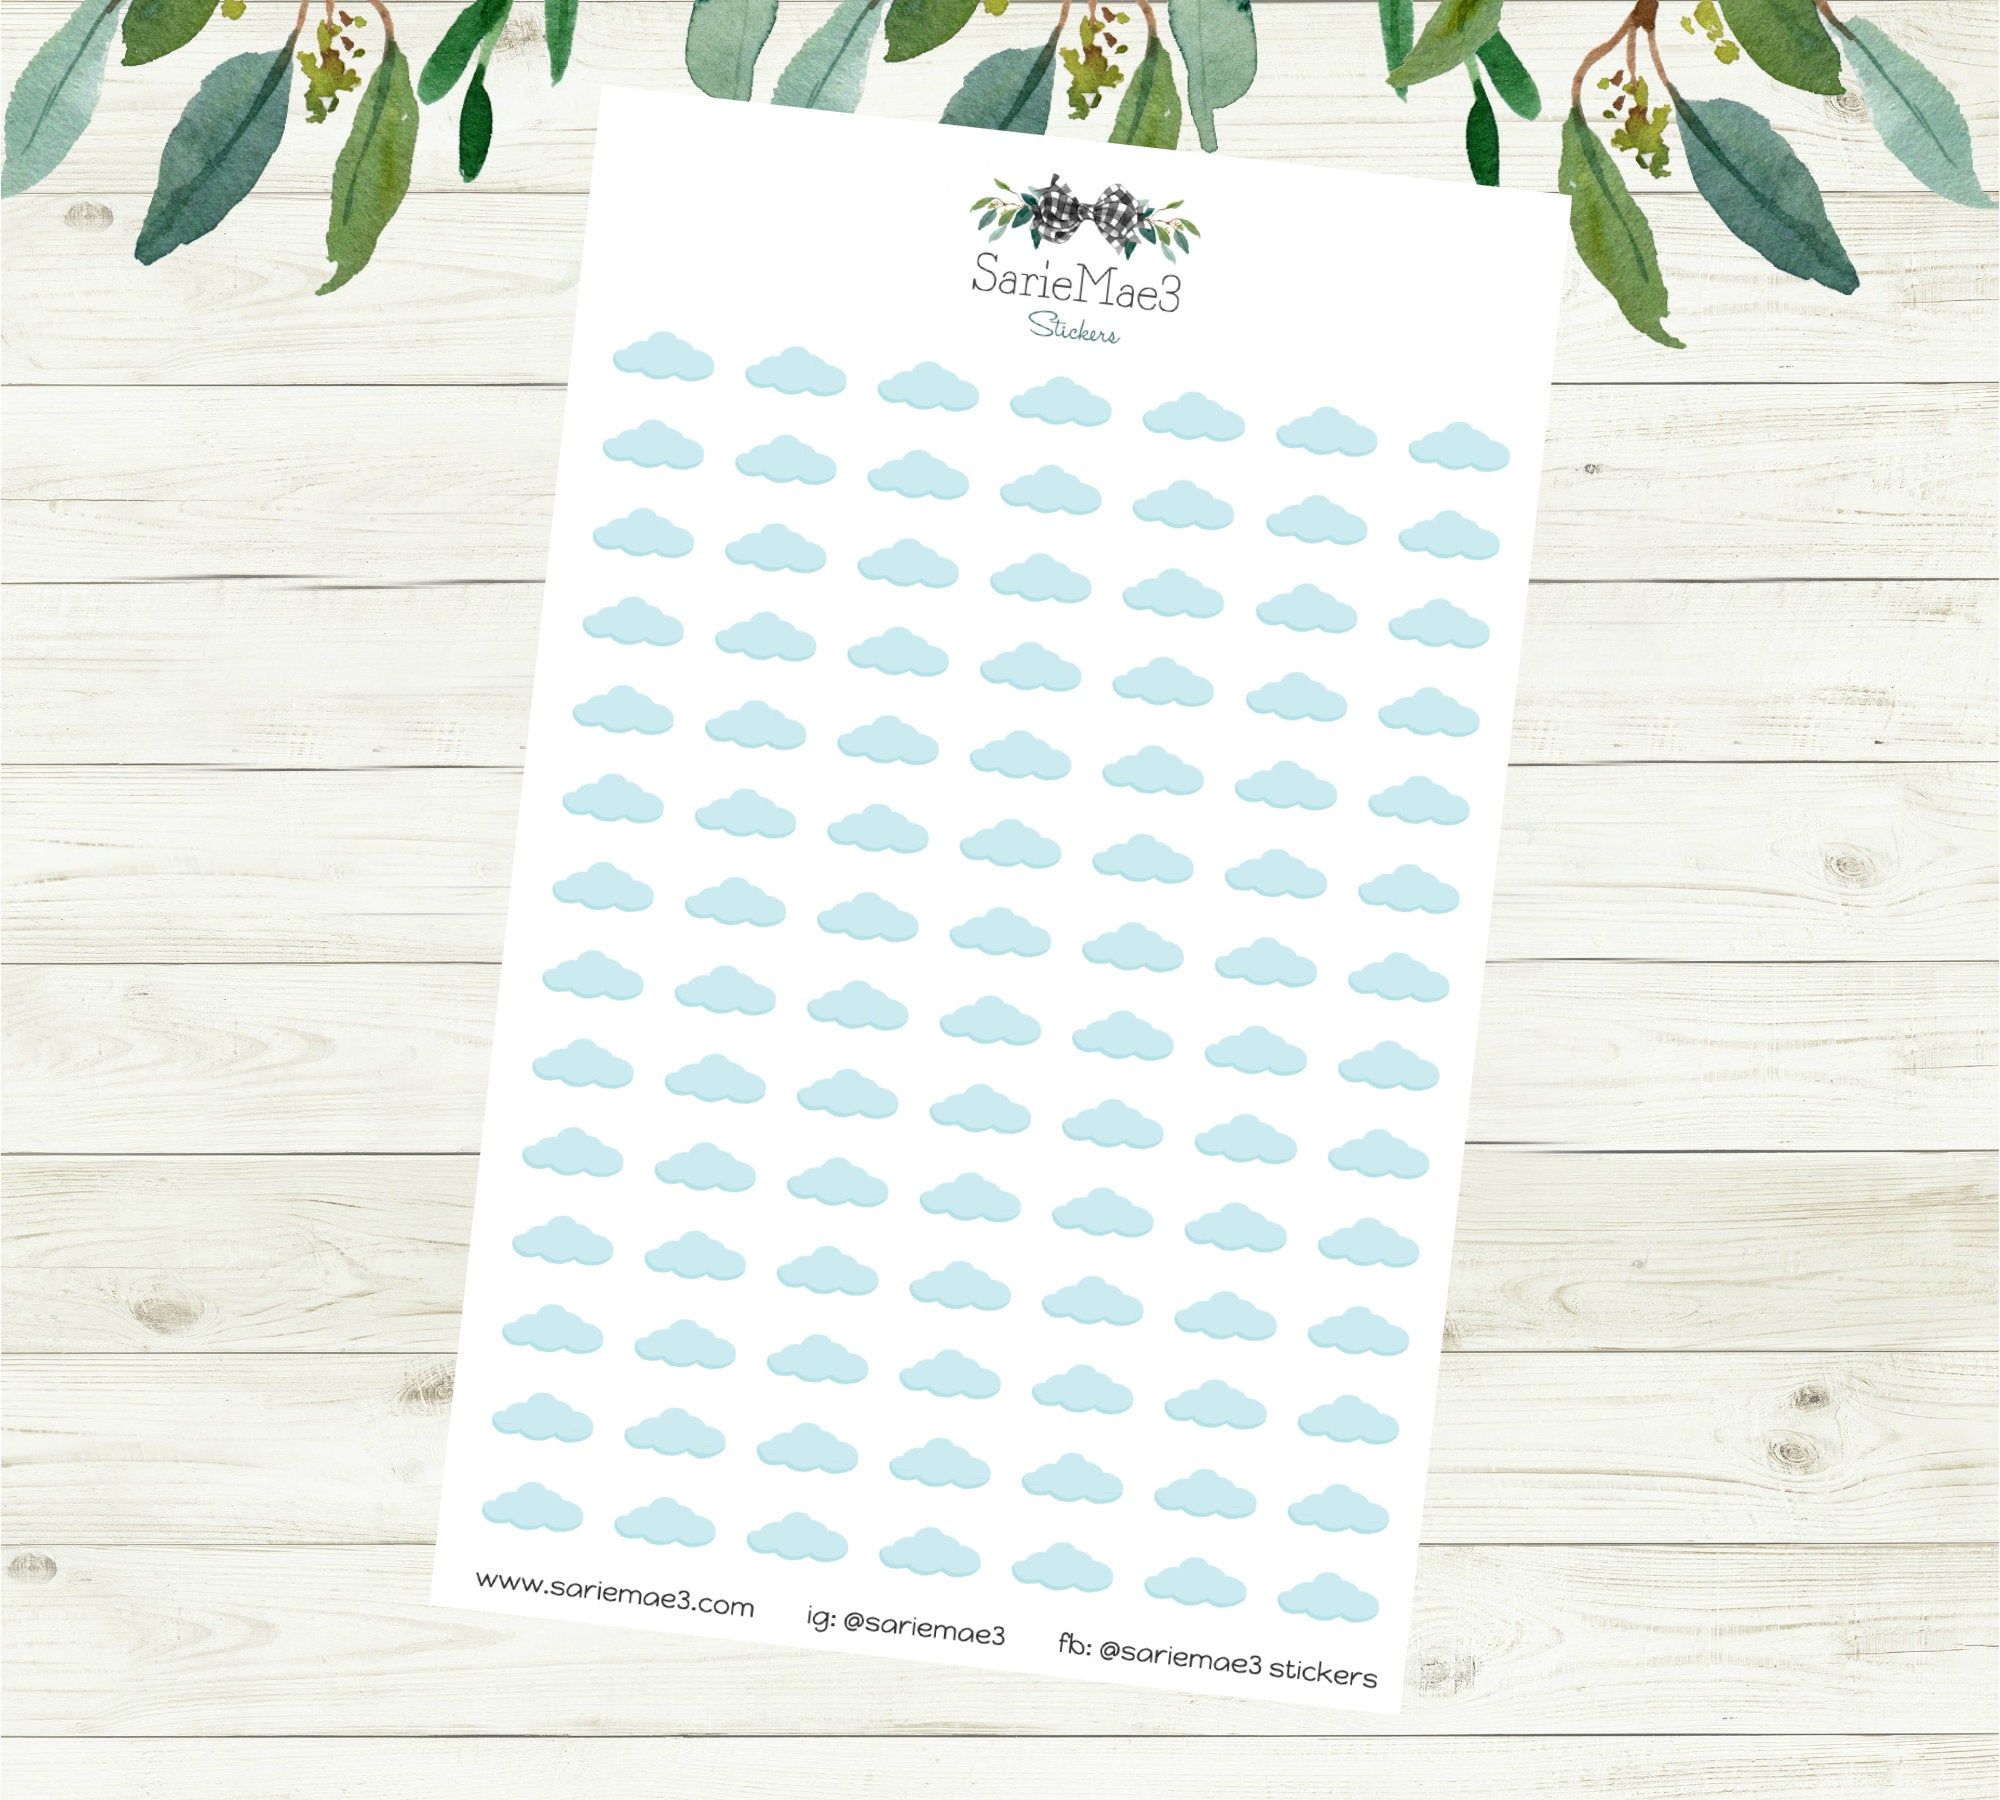 Cloudy Weather Planner Stickers